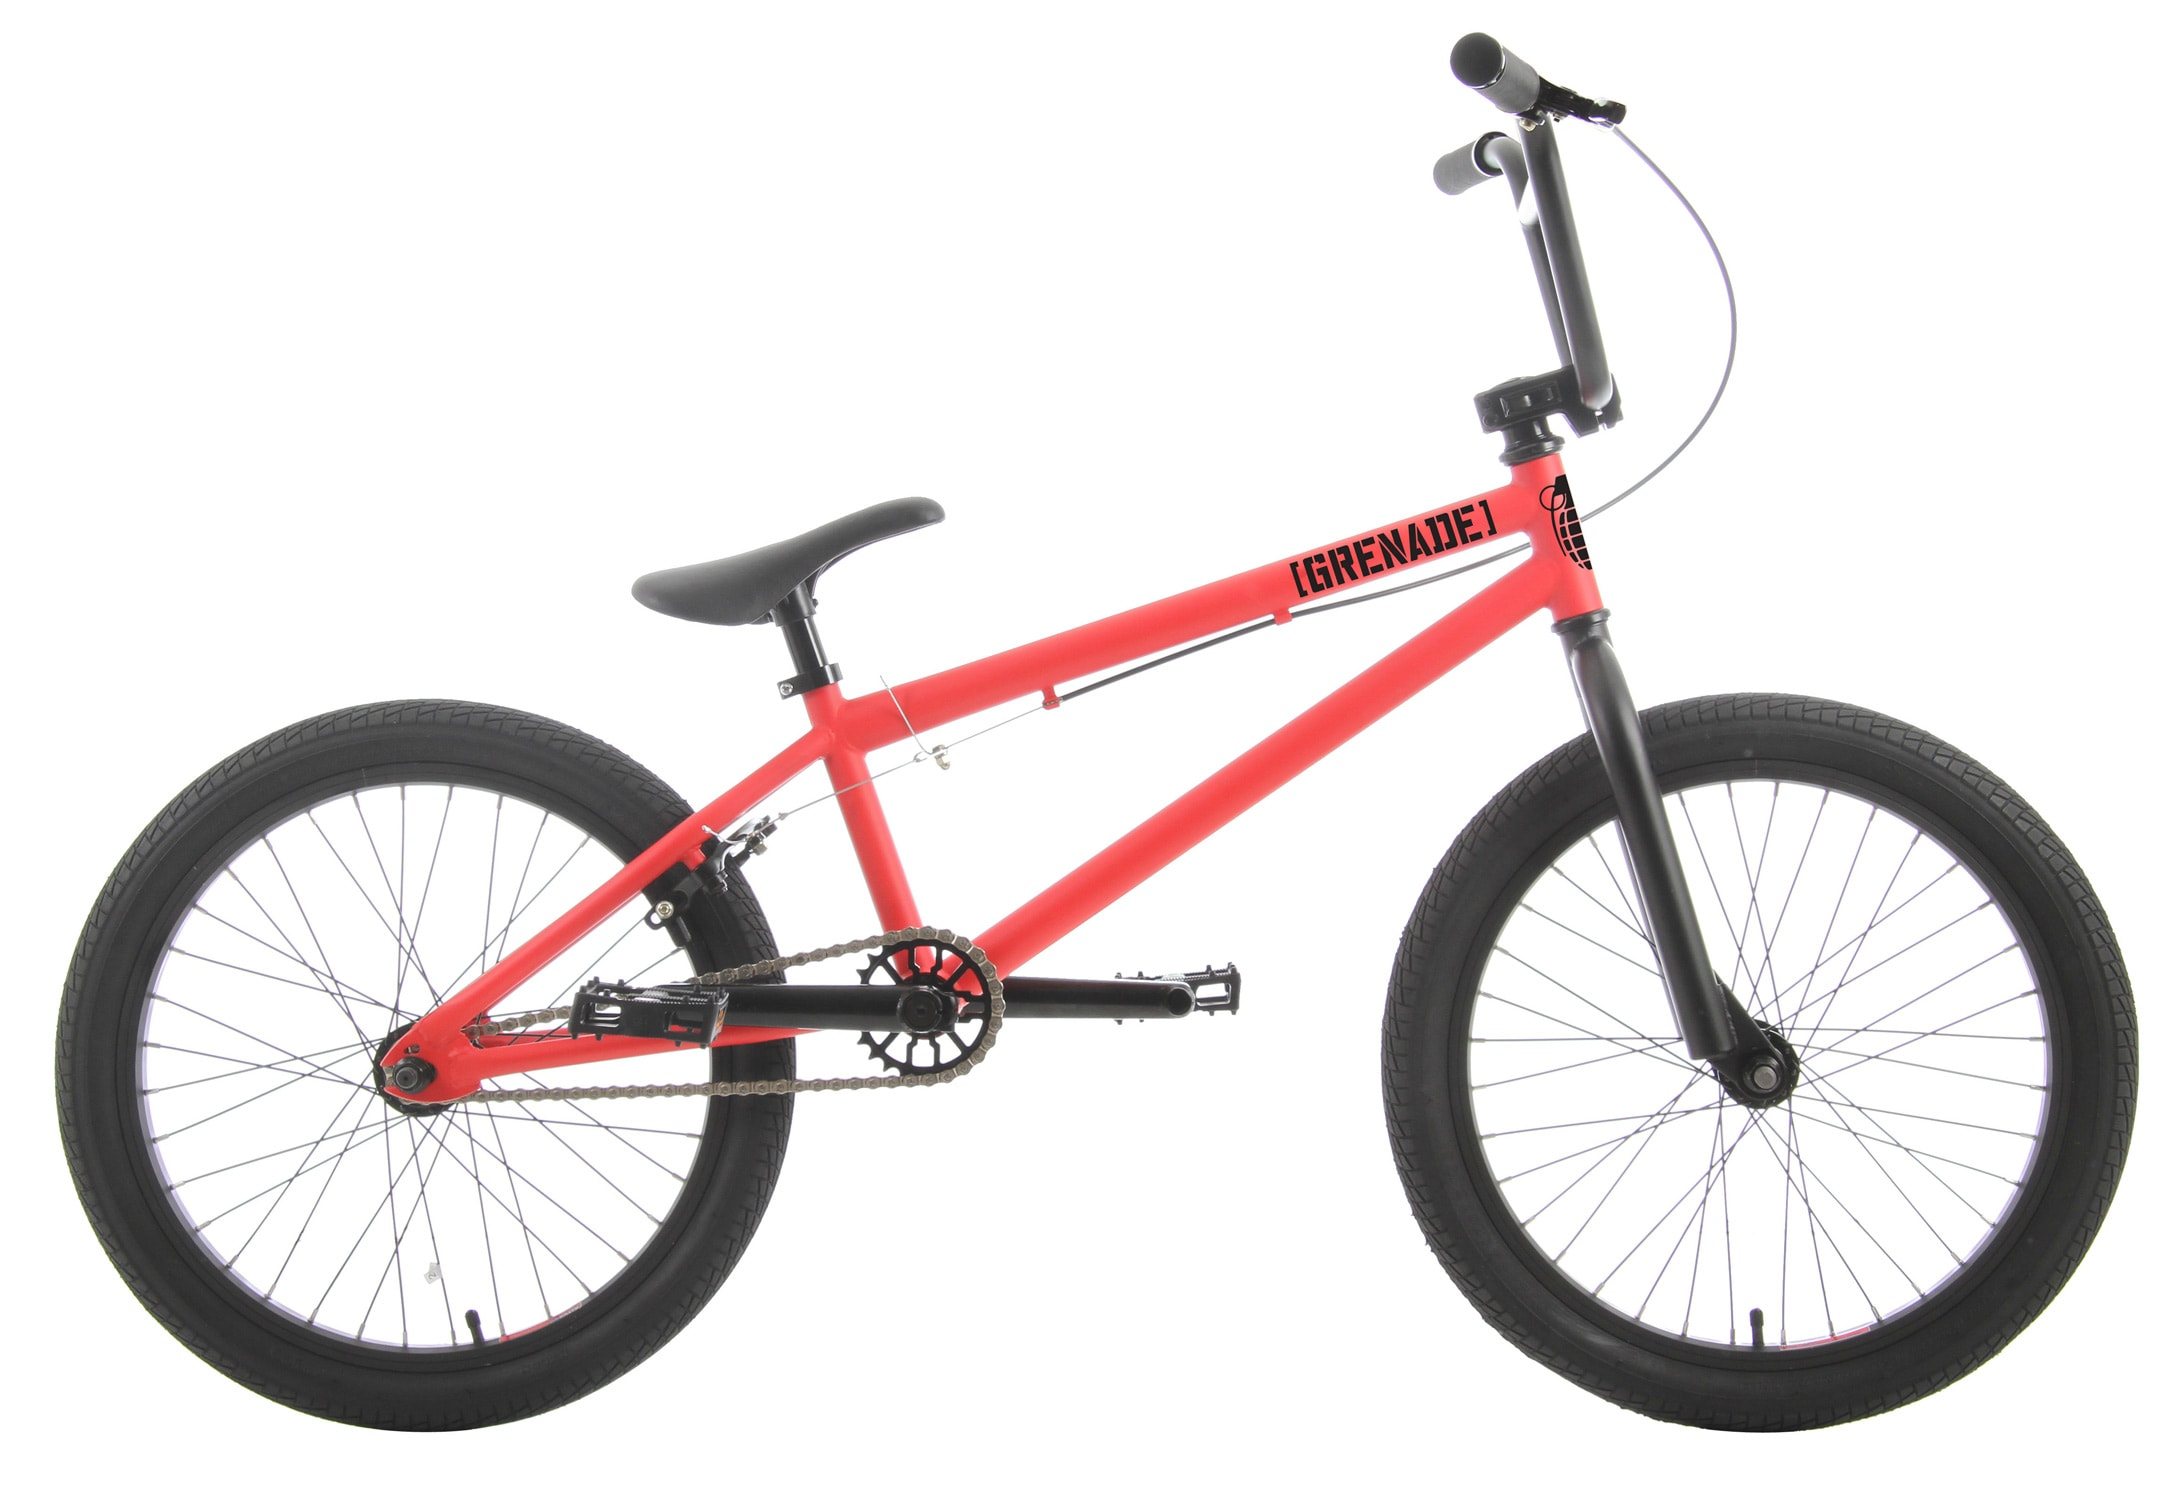 Shop for Grenade Stealth BMX Bike 20&quot; Fire Red/Black